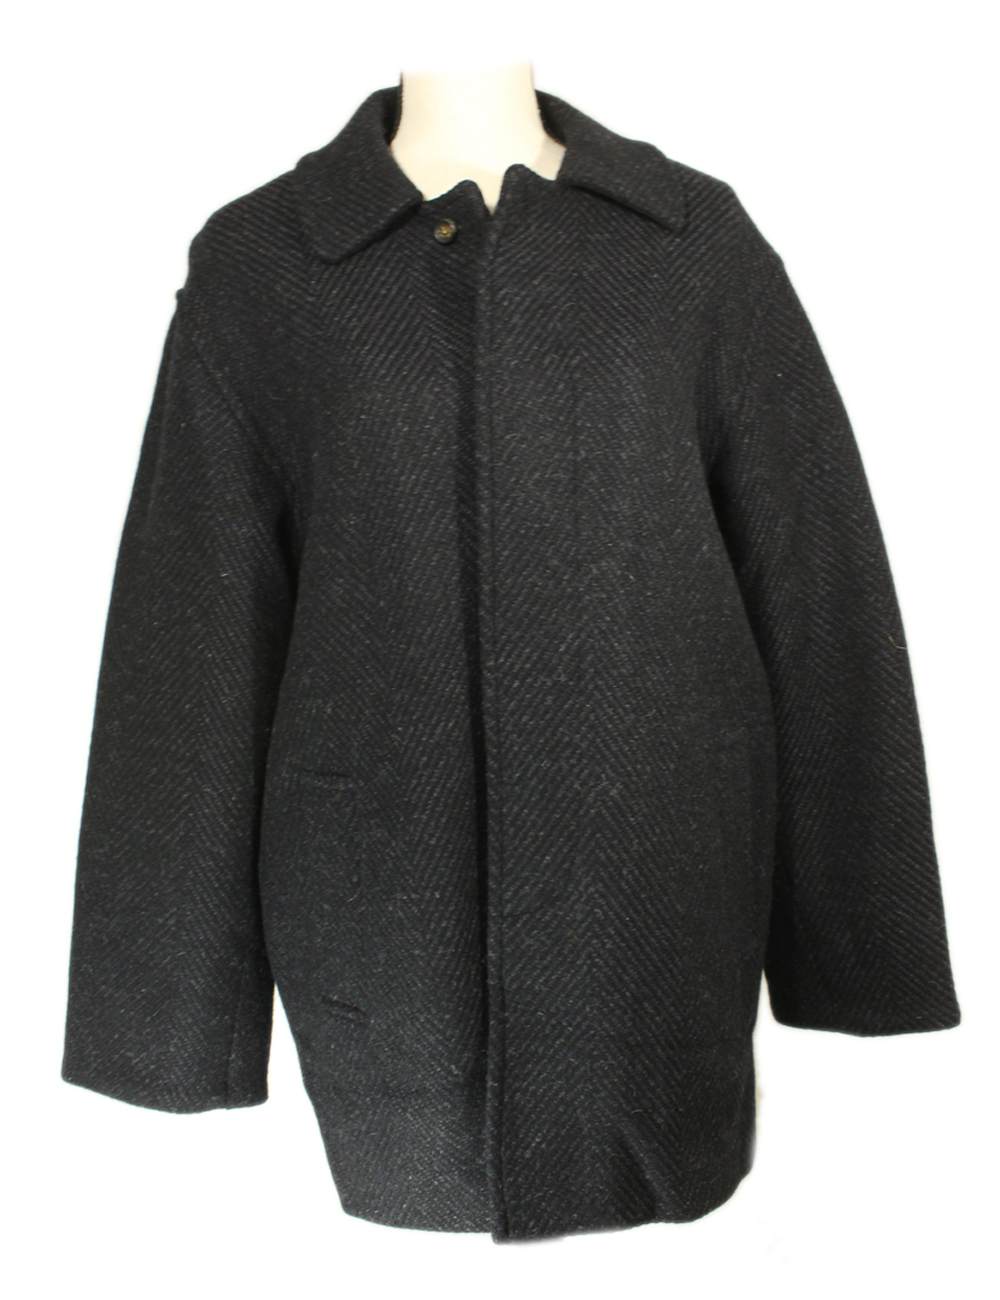 New Mens Wool Coat Tweed Handwoven Made in Ireland Studio Donegal by Studio Donegal